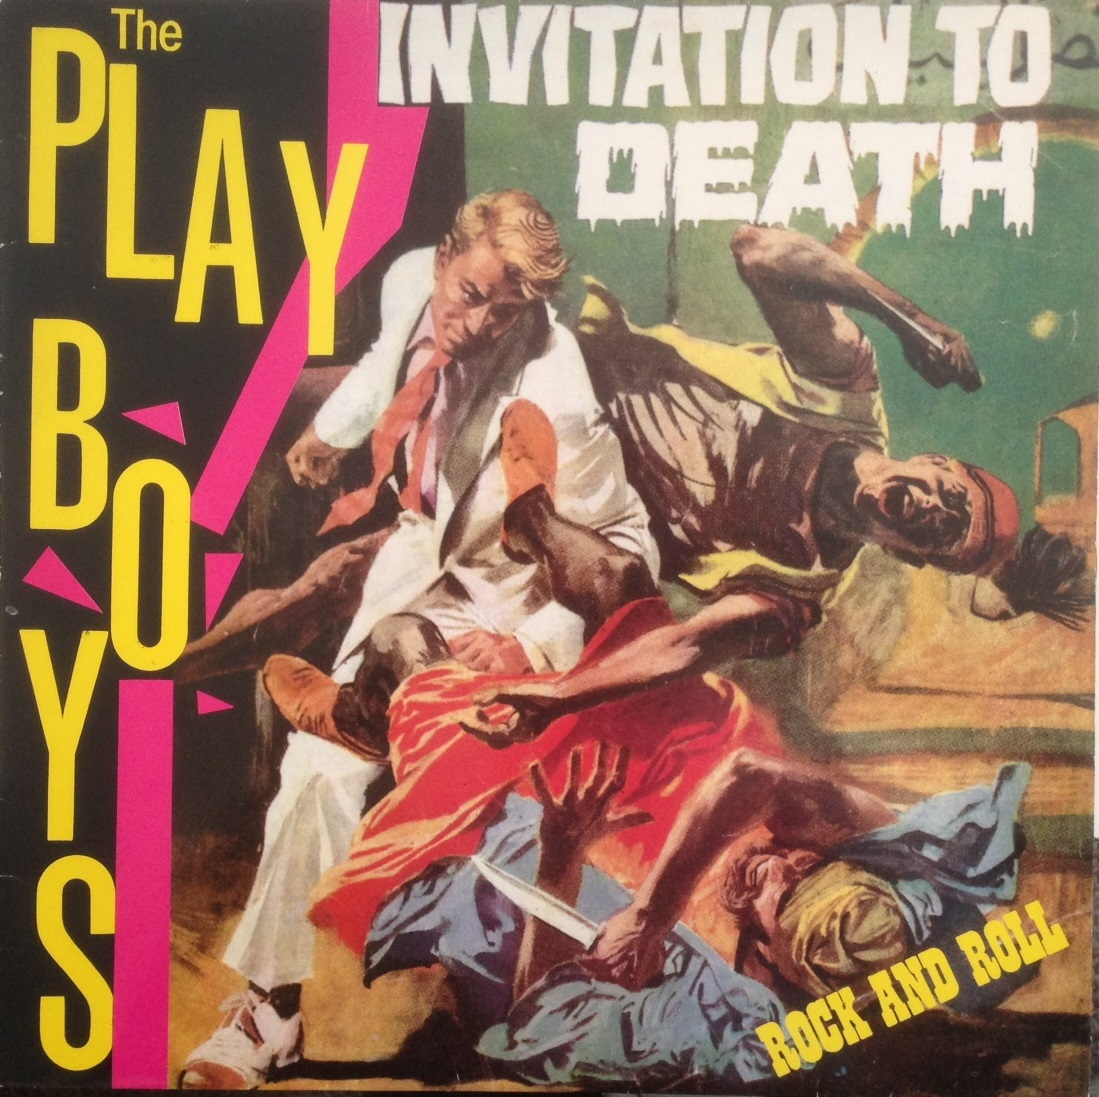 PLAYBOYS / INVITATION TO DEATH